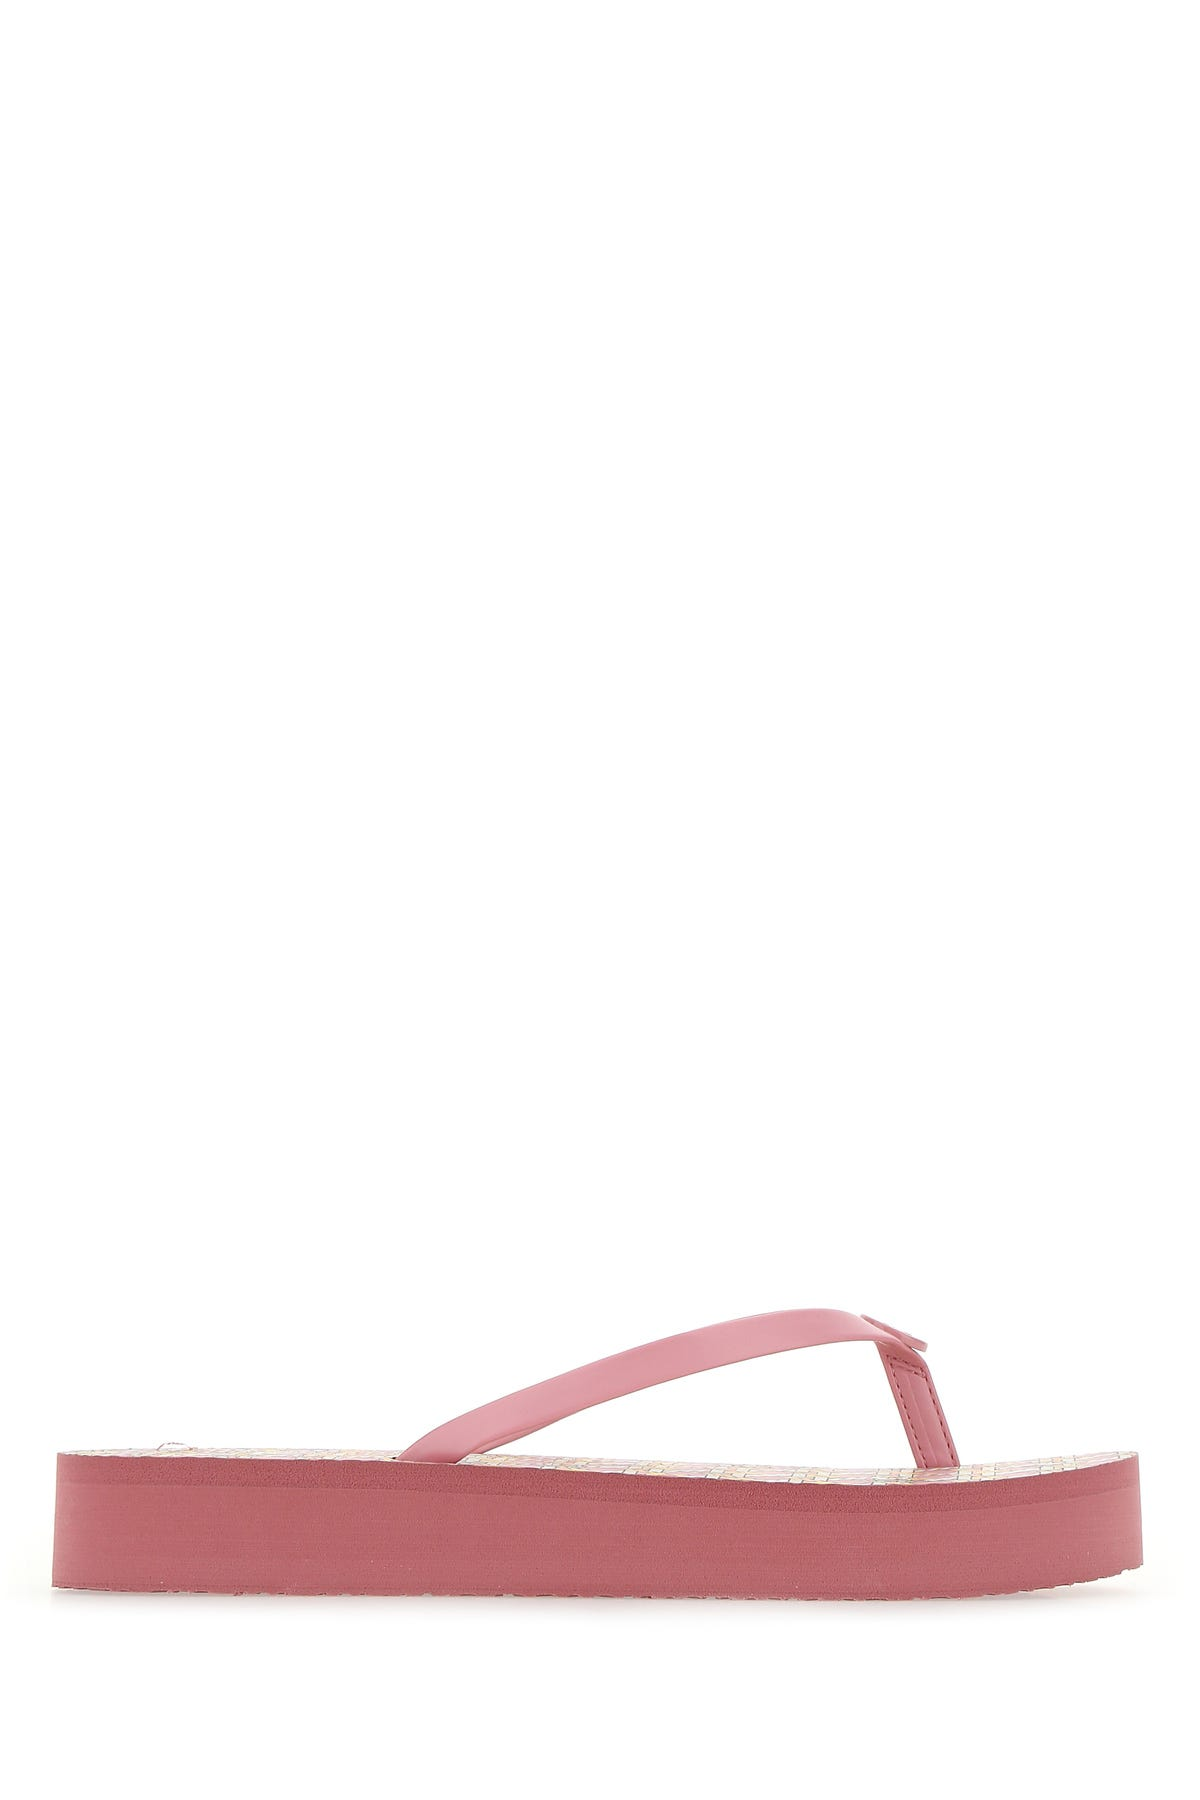 Tory Burch Printed Synthetic Leather And Rubber Thong Slippers  Nd  Donna 9